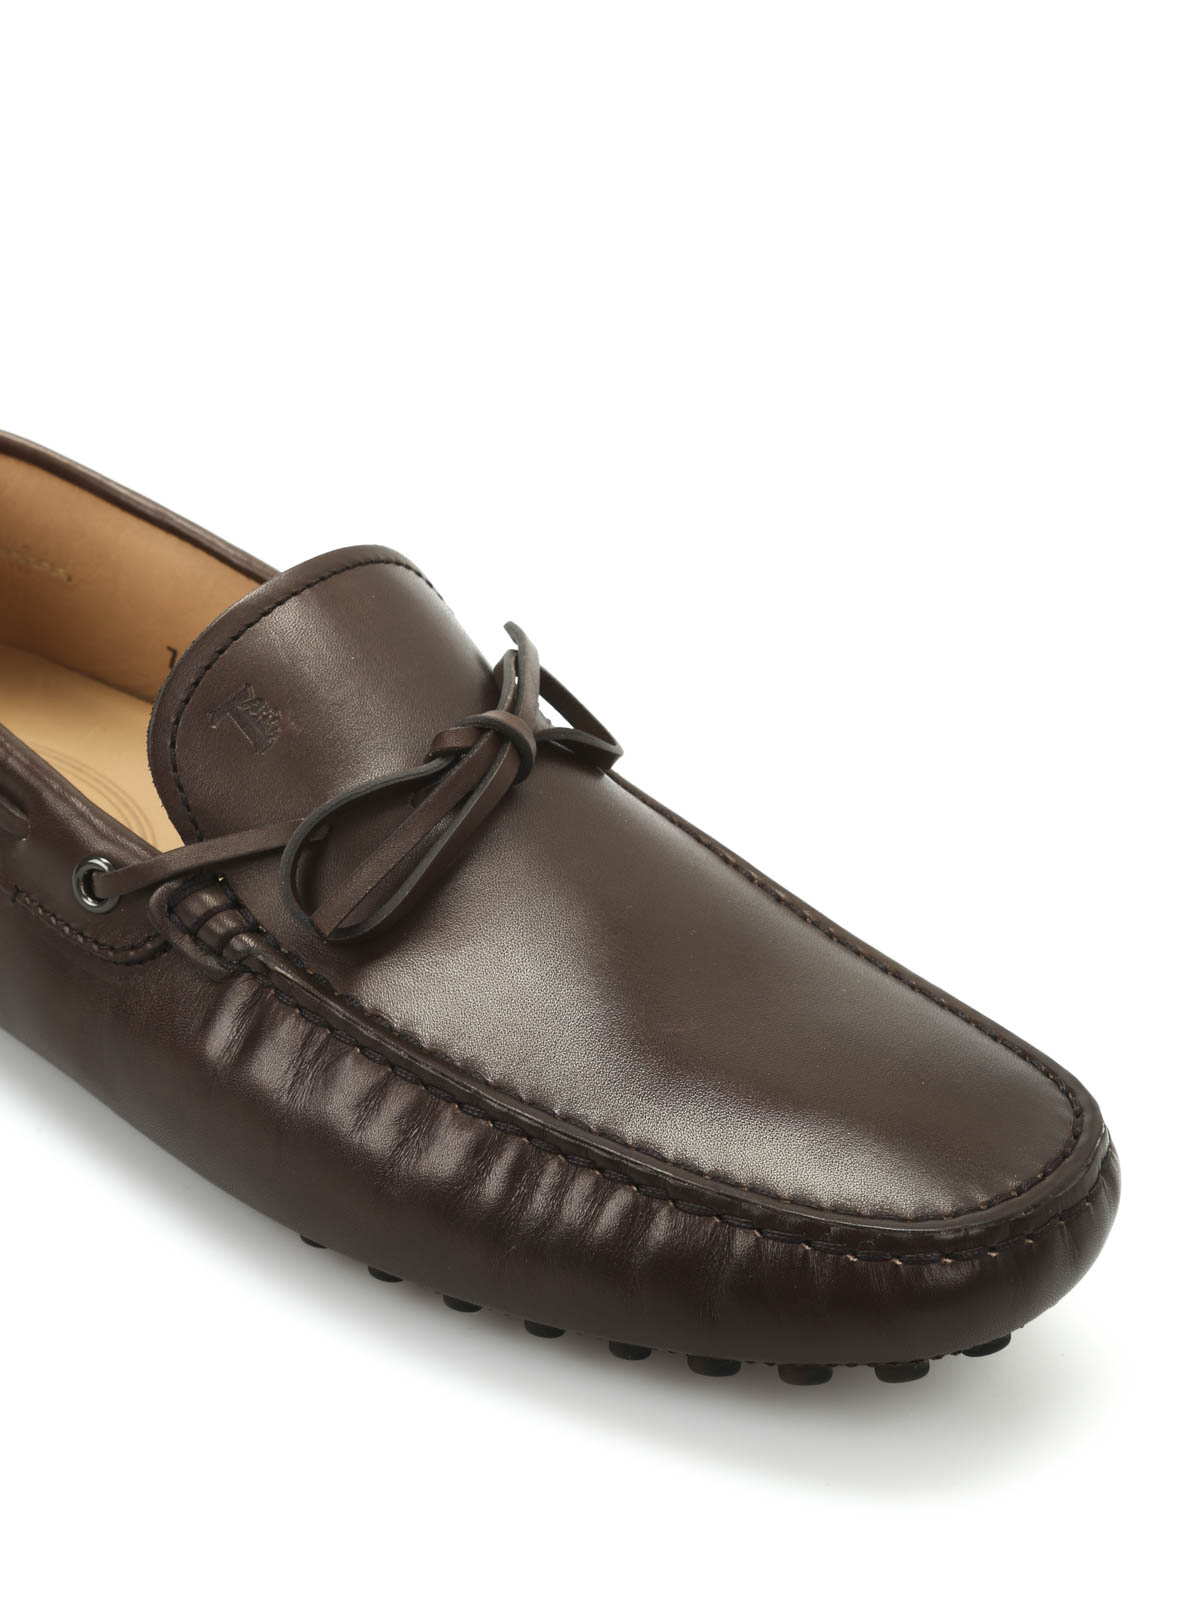 Brown Leather Shoes For Women Under